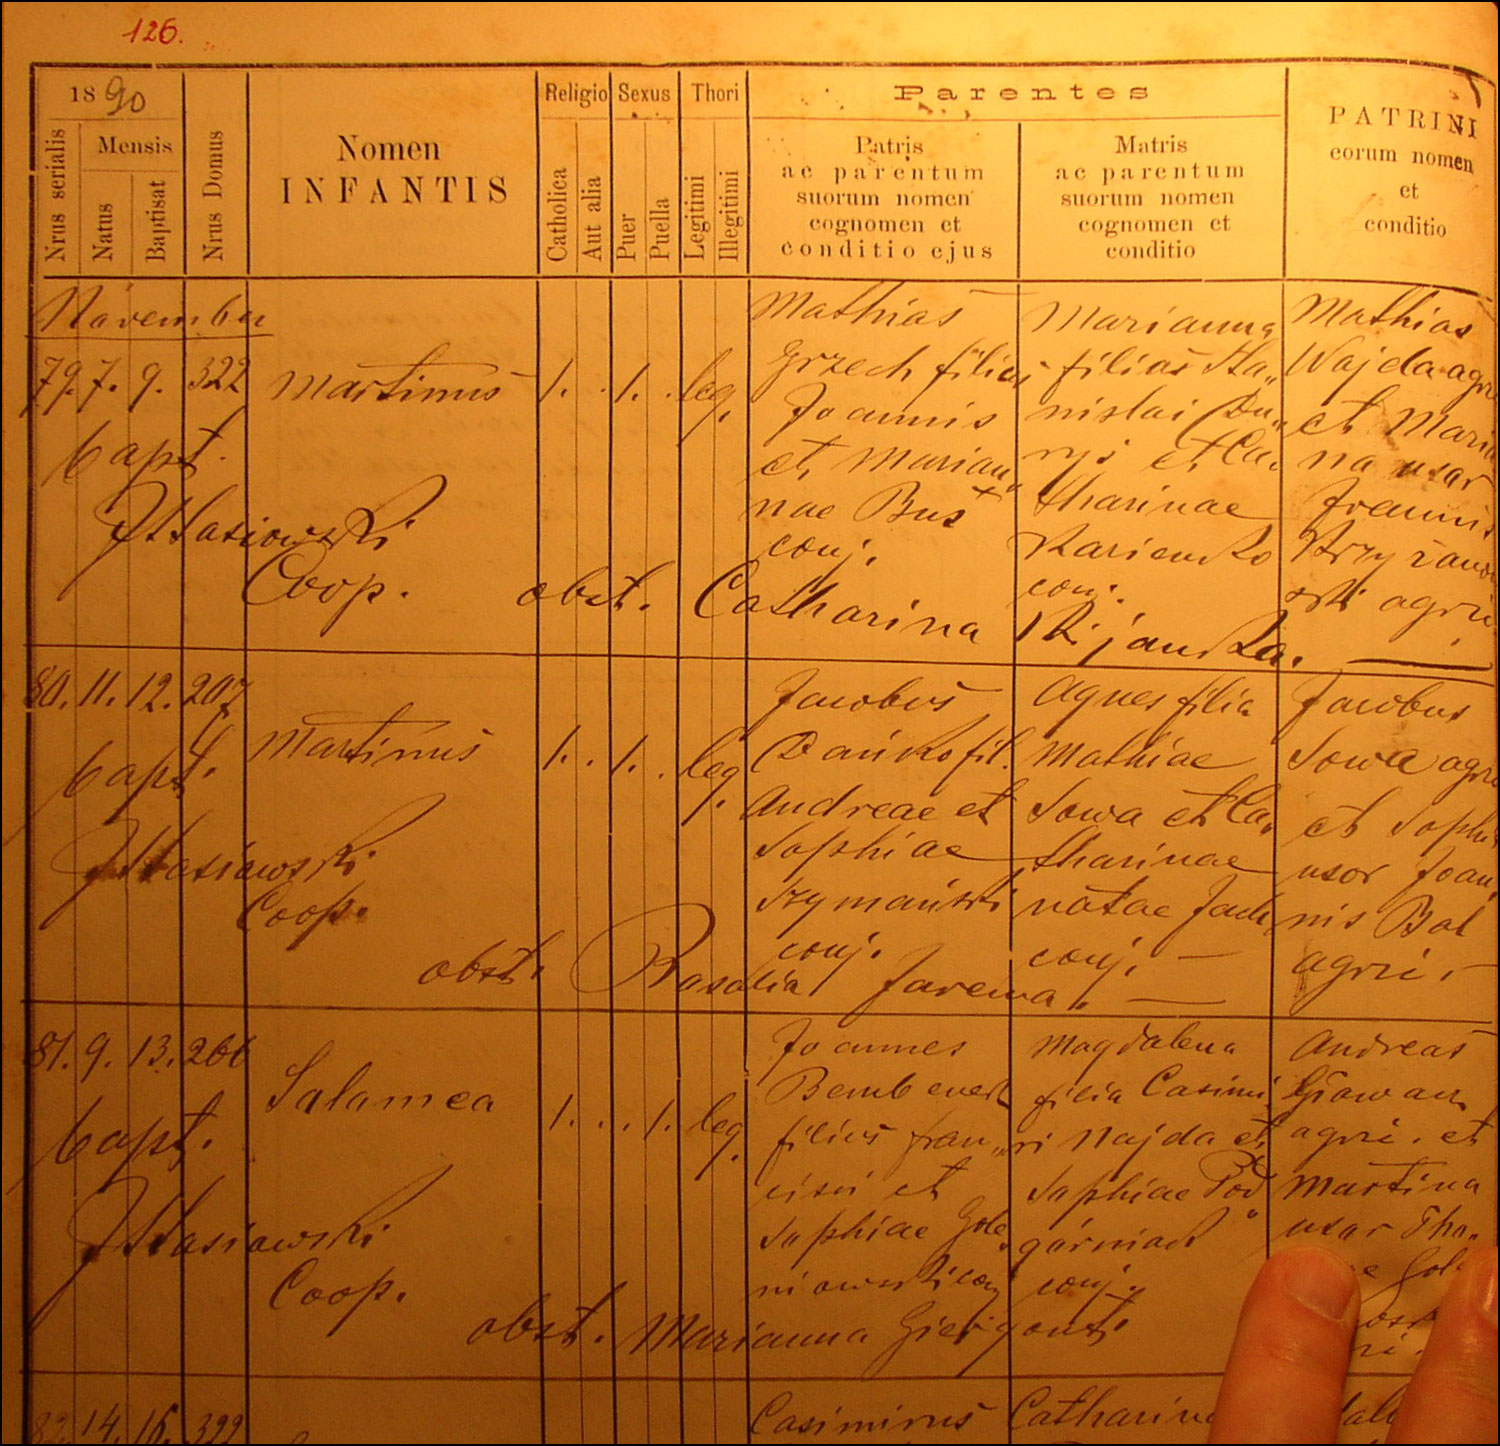 Birth and Baptismal Record for Marcin Danko